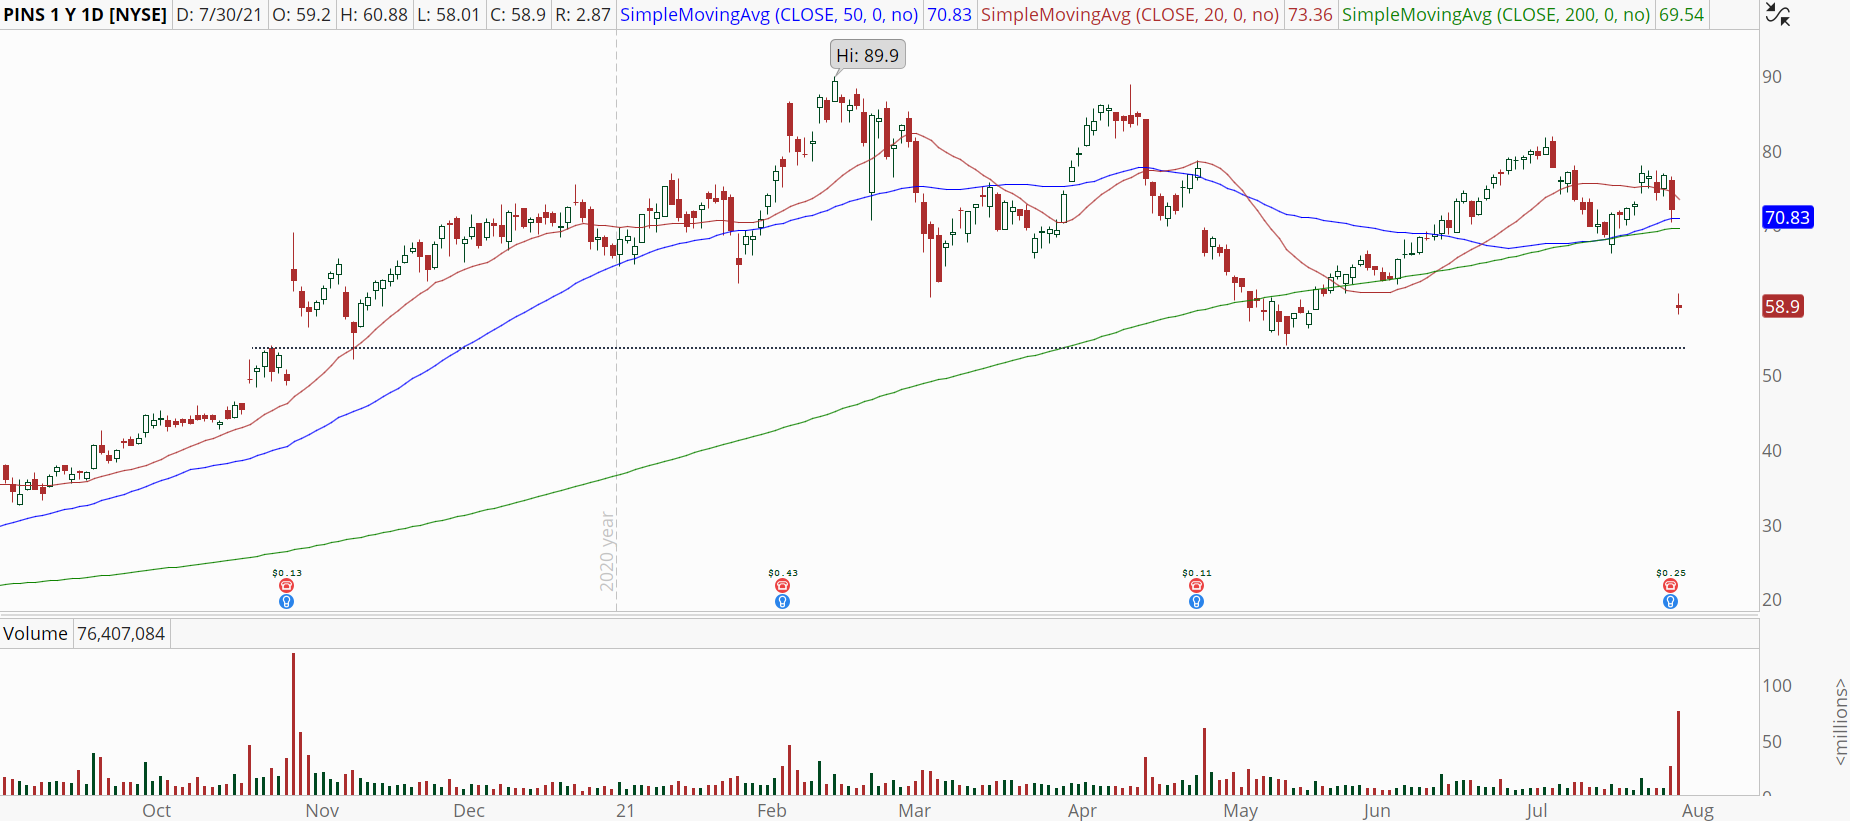 Pinterest (PINS) stock with large earnings gap.